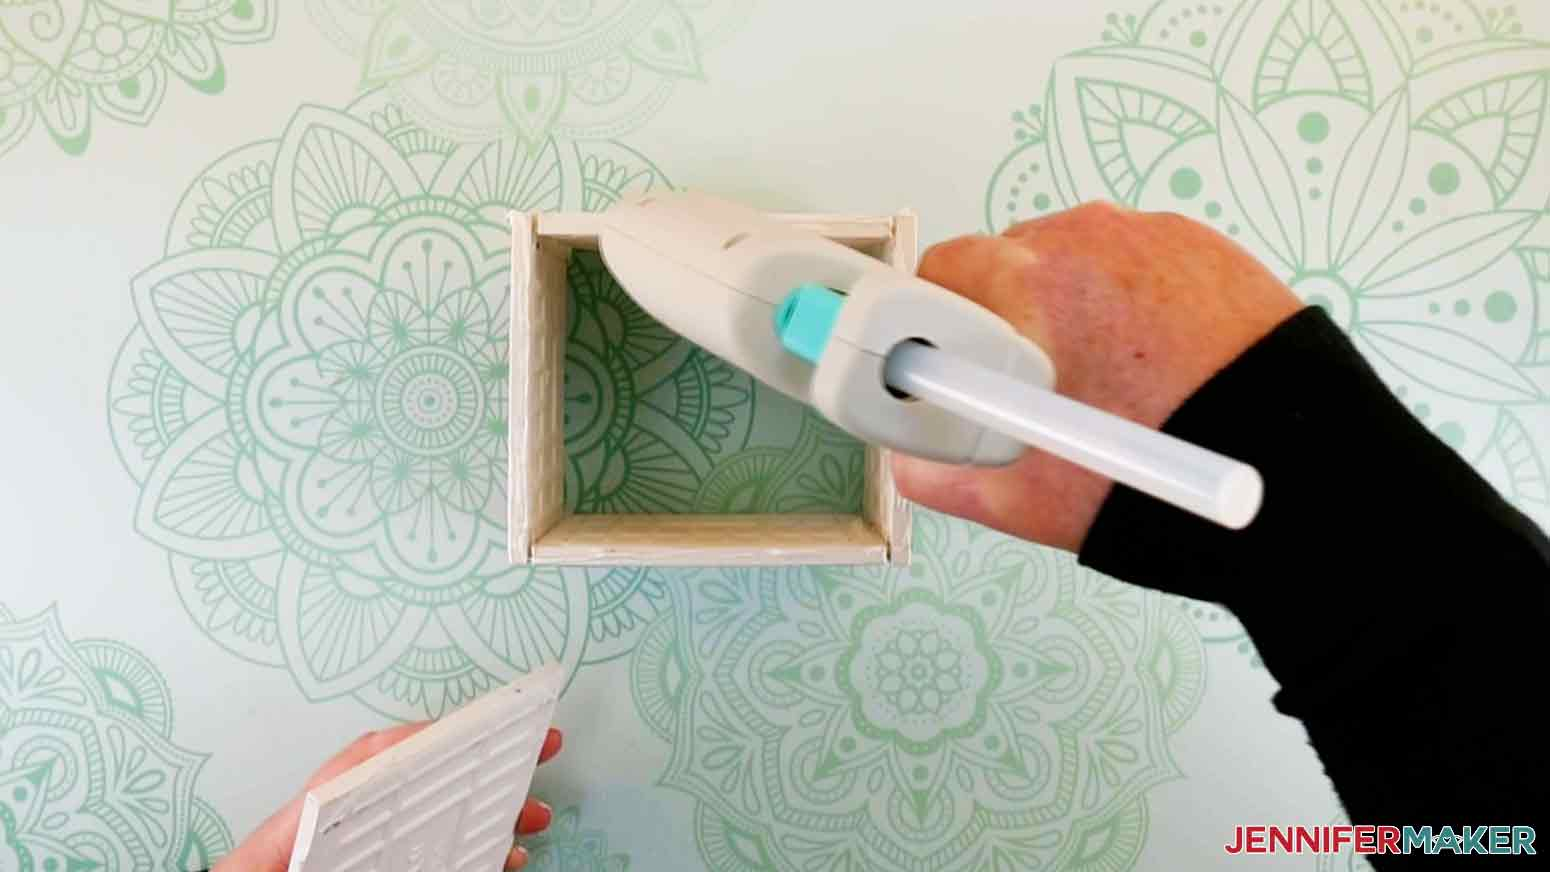 Add hot glue to the bottom edges of the tiles for my DIY Plant Pot with Tiles project